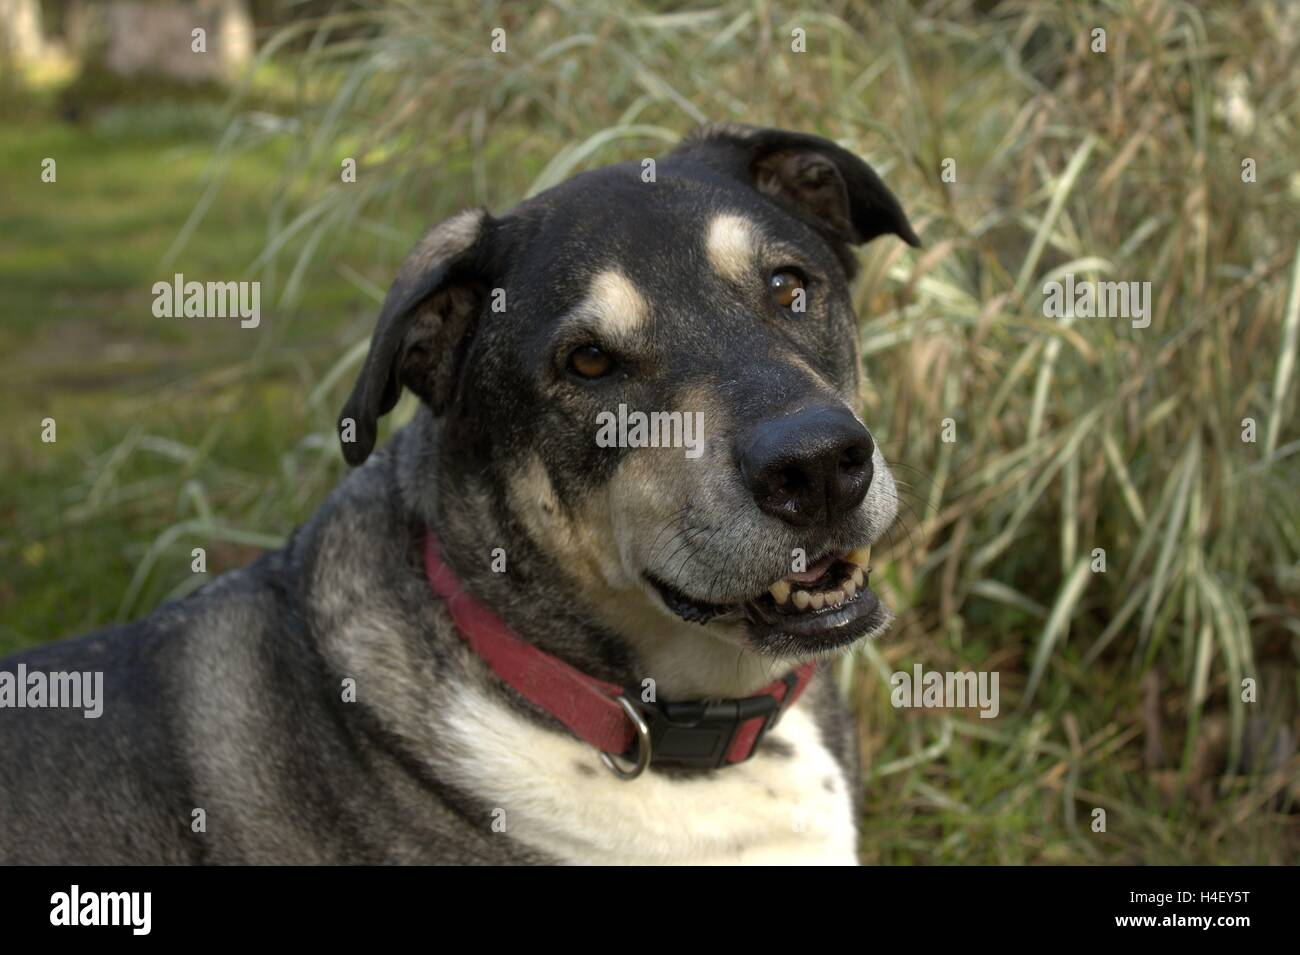 My Old But Happy Dog, Rudy Valentino, at 12 Years Old - Stock Image